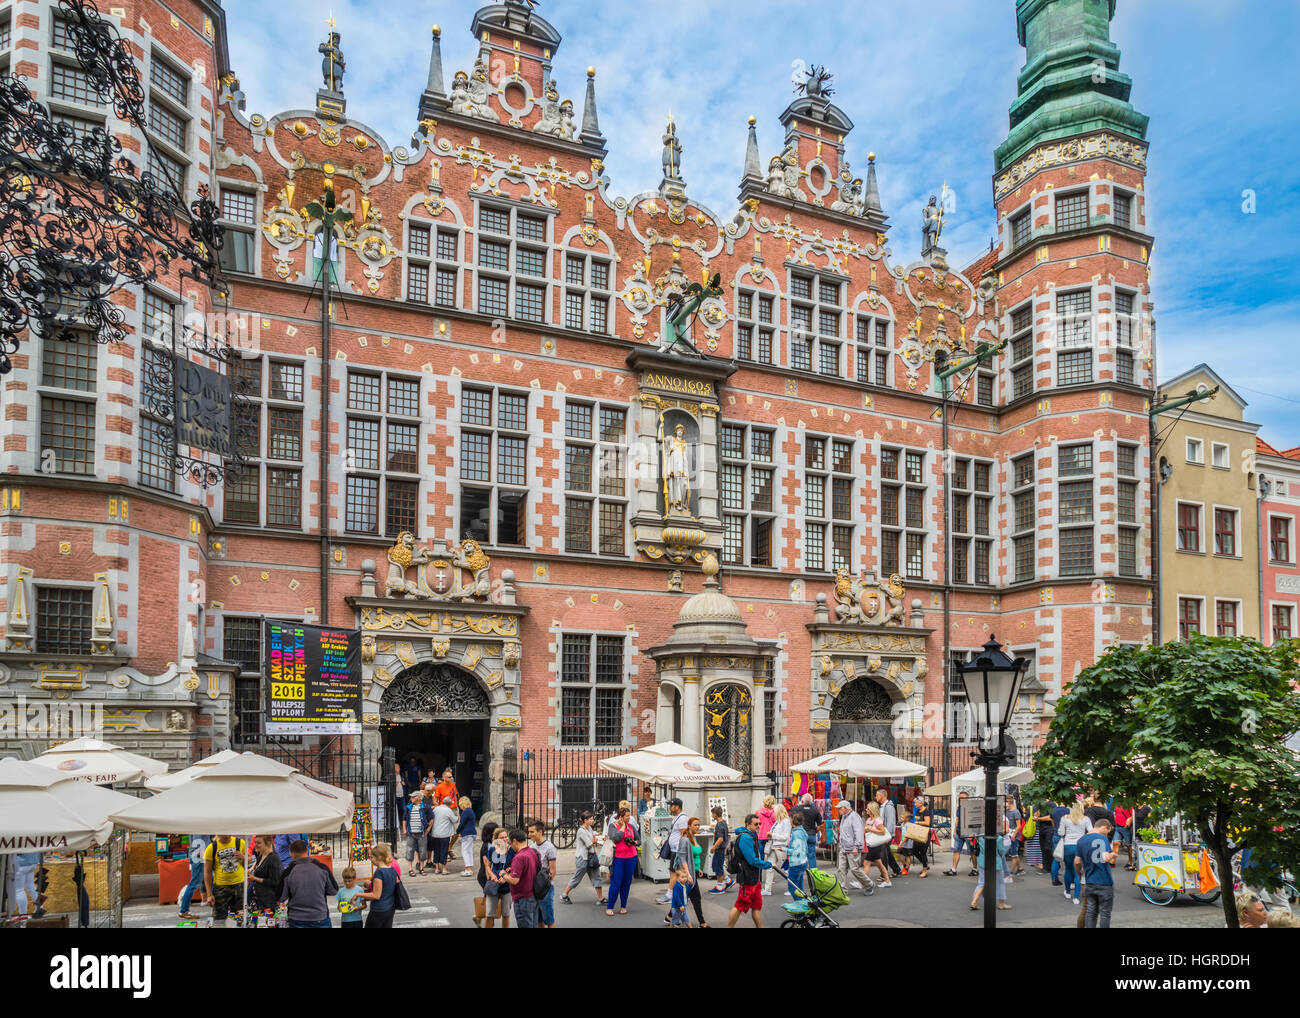 Poland, Pomerania, Gdansk (Danzig), the floridly decorated eastern facade of the Dutch-style Great Arsenal (Großes - Stock Image